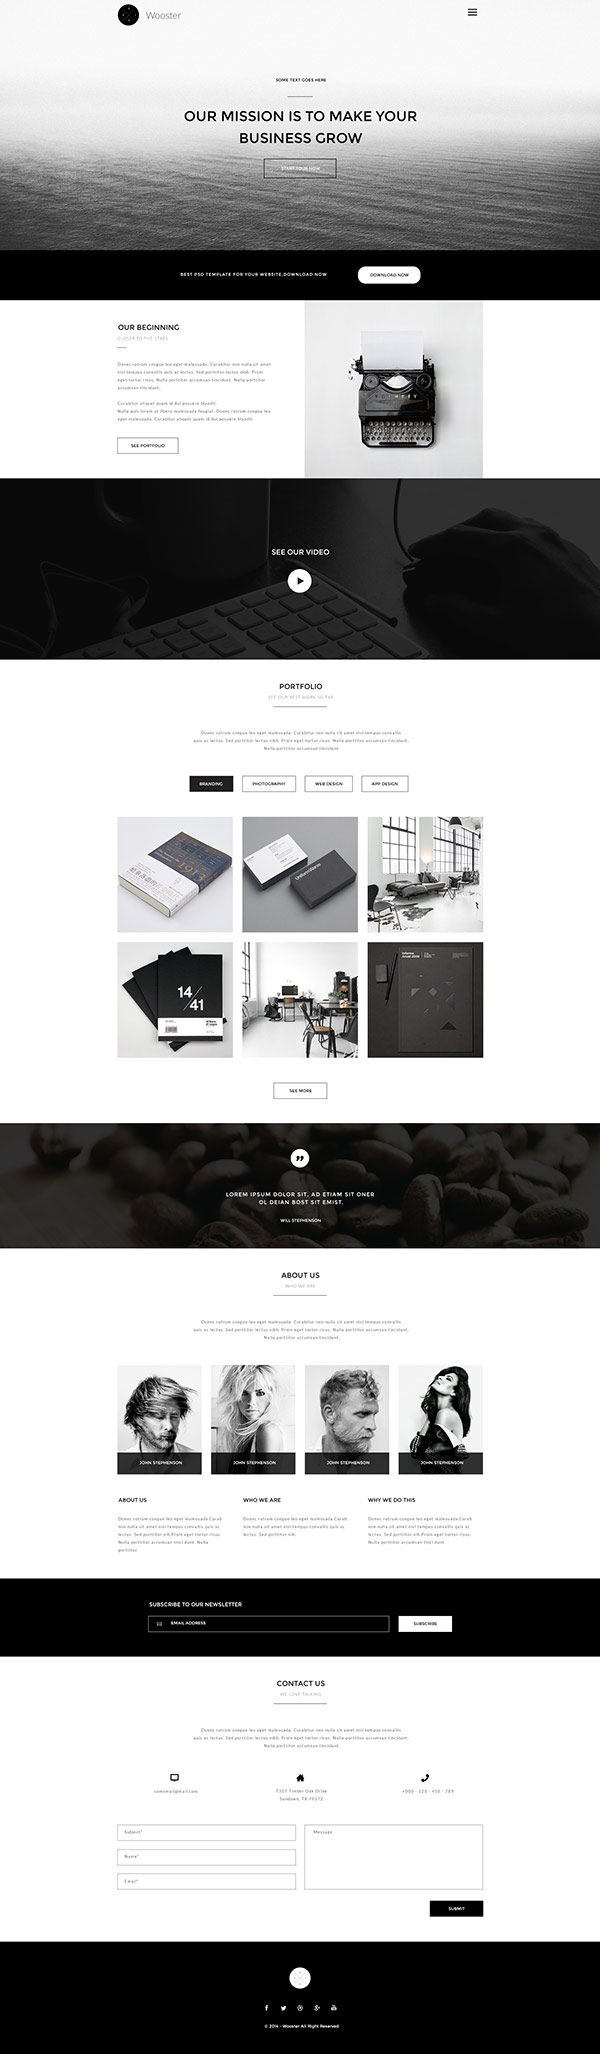 5 free website templates in Photoshop (PSD) format | Tools | Web ...